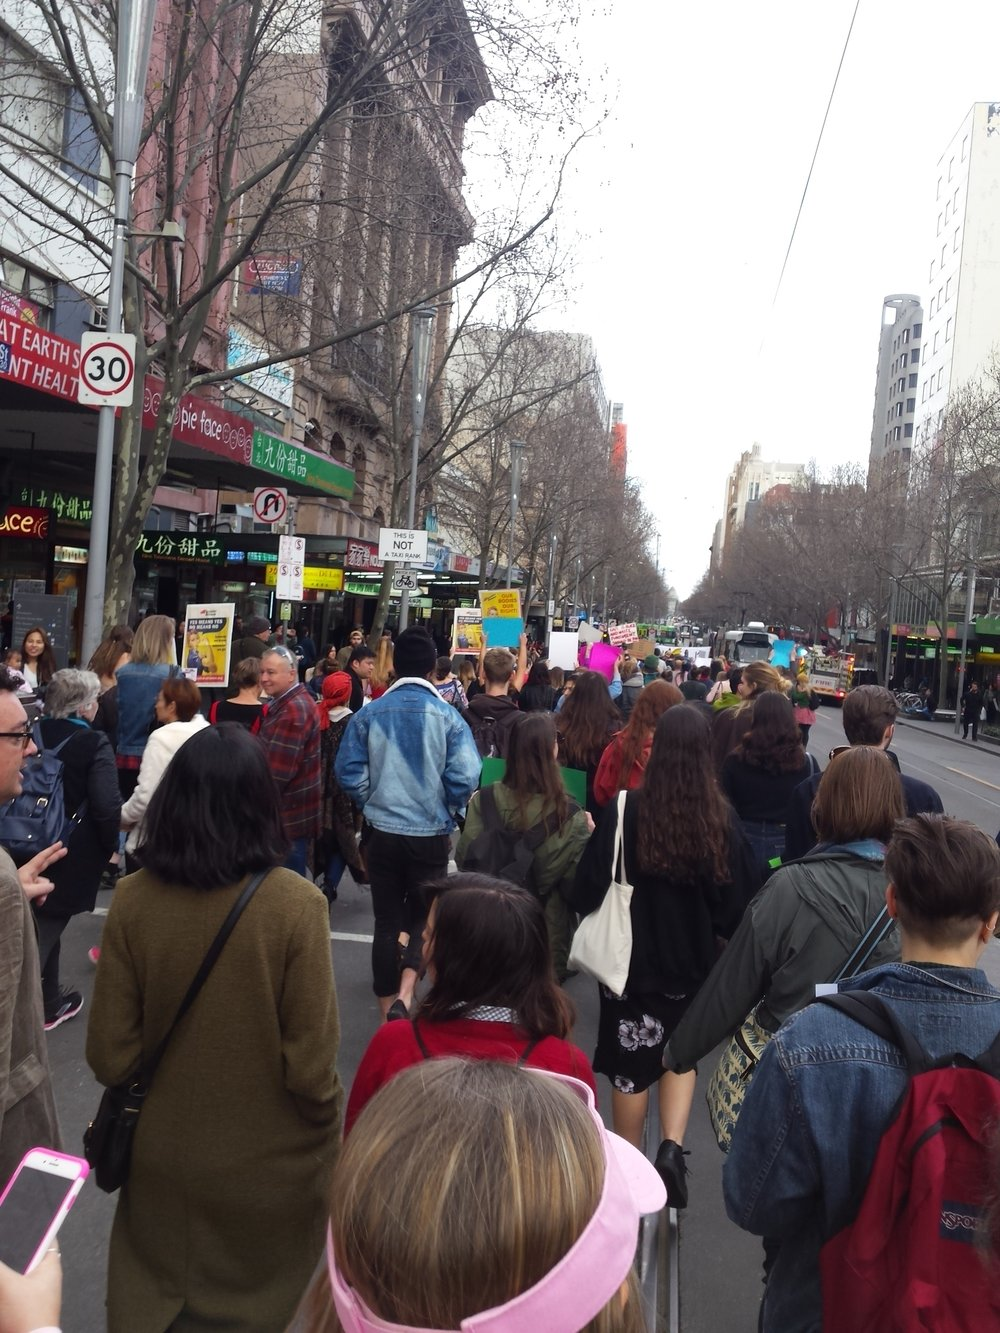 We march on down Swanston Street Melbourne as we chant